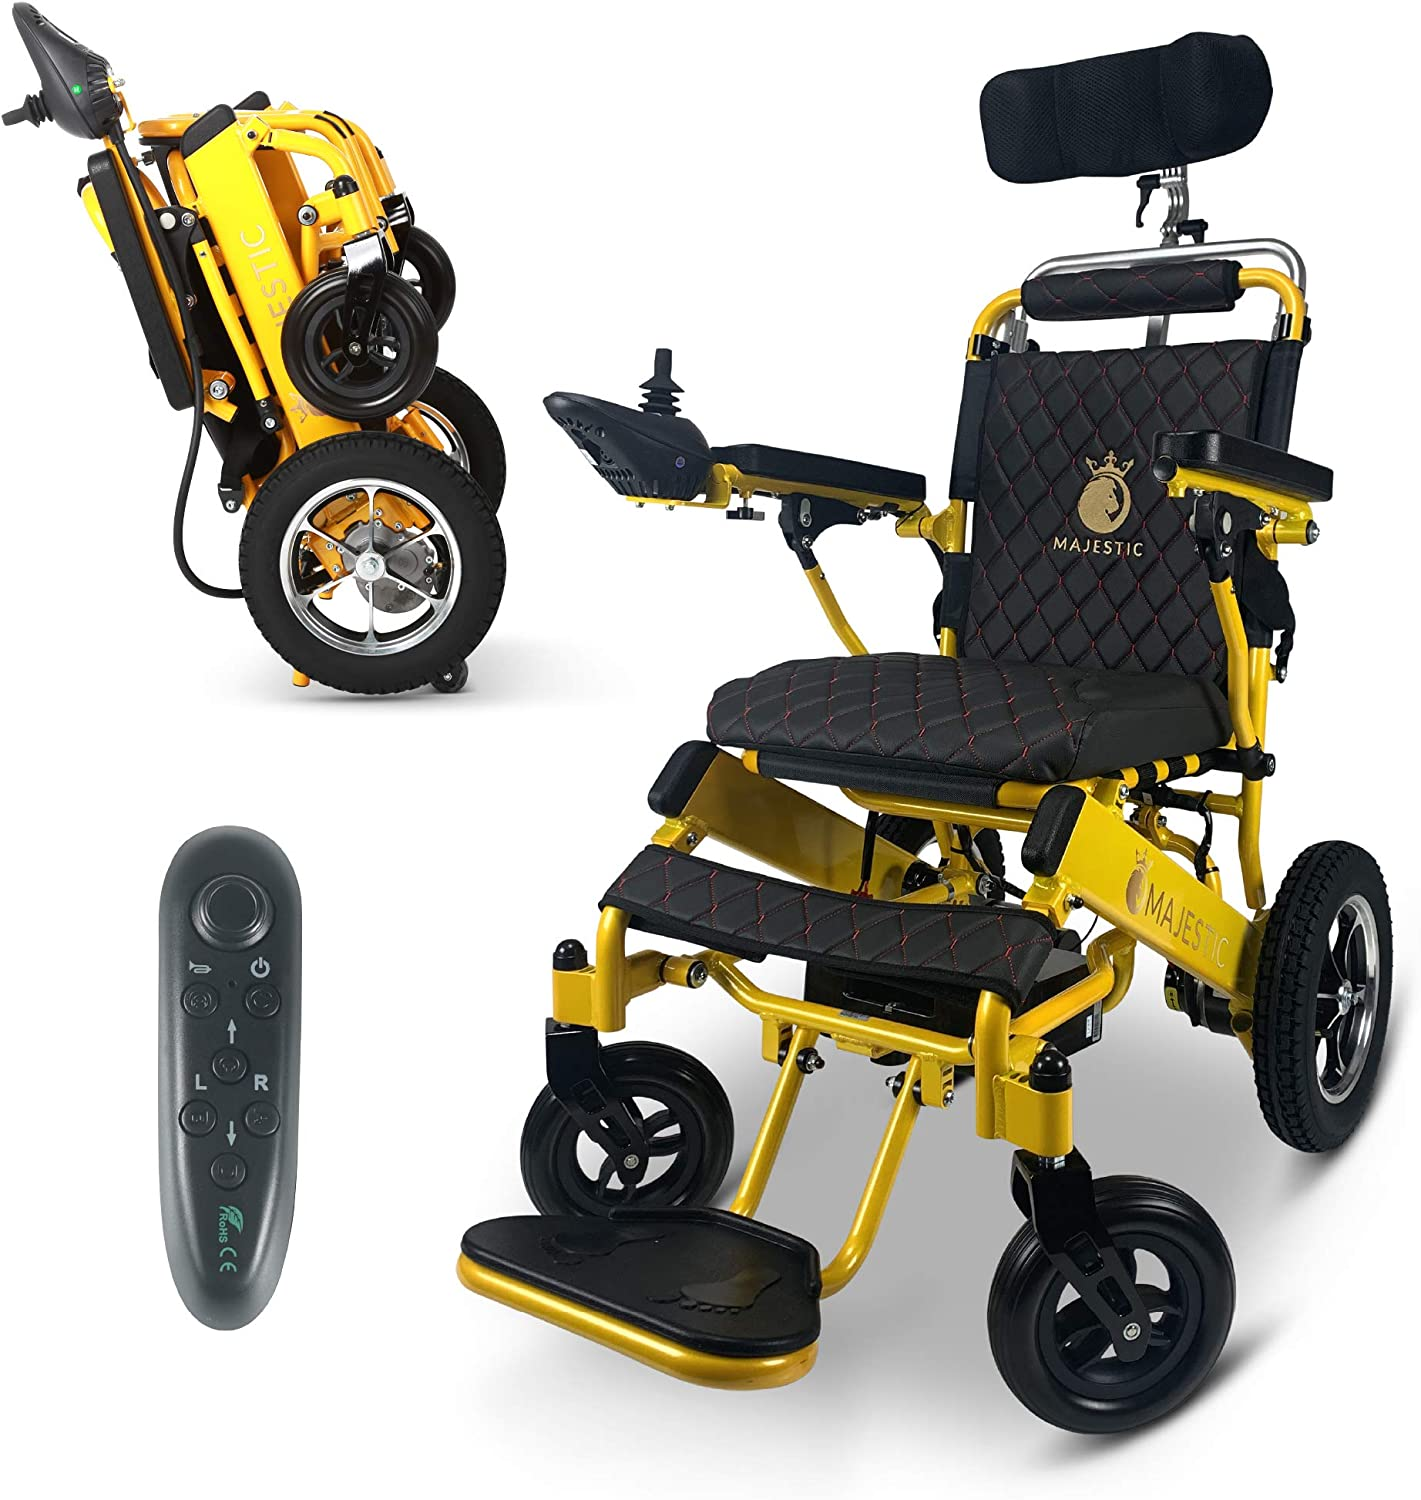 2021 New Max 55% OFF Lightweight Foldable Factory outlet Wheelchair Electr Control Remote -